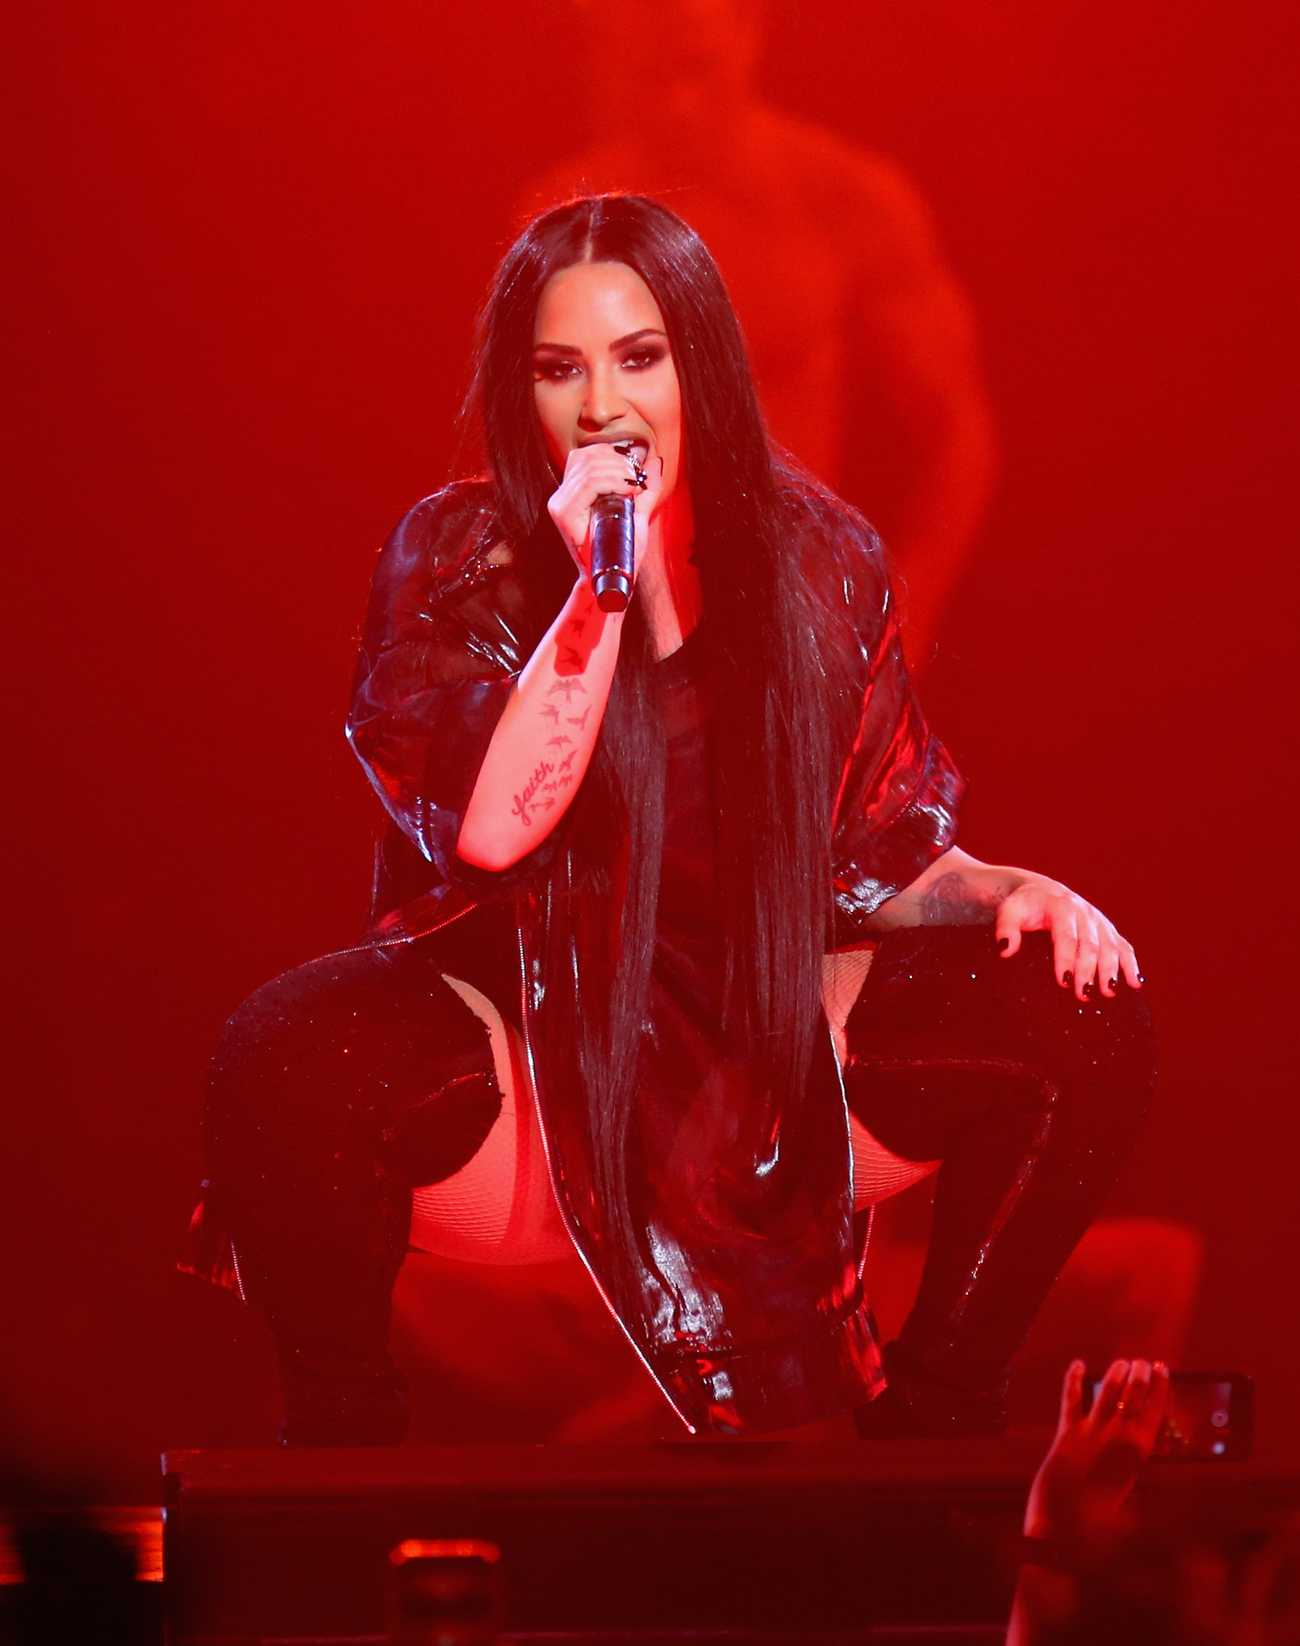 http://demigallery.com/albums/userpics/10001/Demi_Lovato_-_Tell_Me_You_Love_Me_Tour_at_MGM_Grand_Garden_Arena_in_Las_Vegas2C_NV_-_March_32C_2018-05.jpg